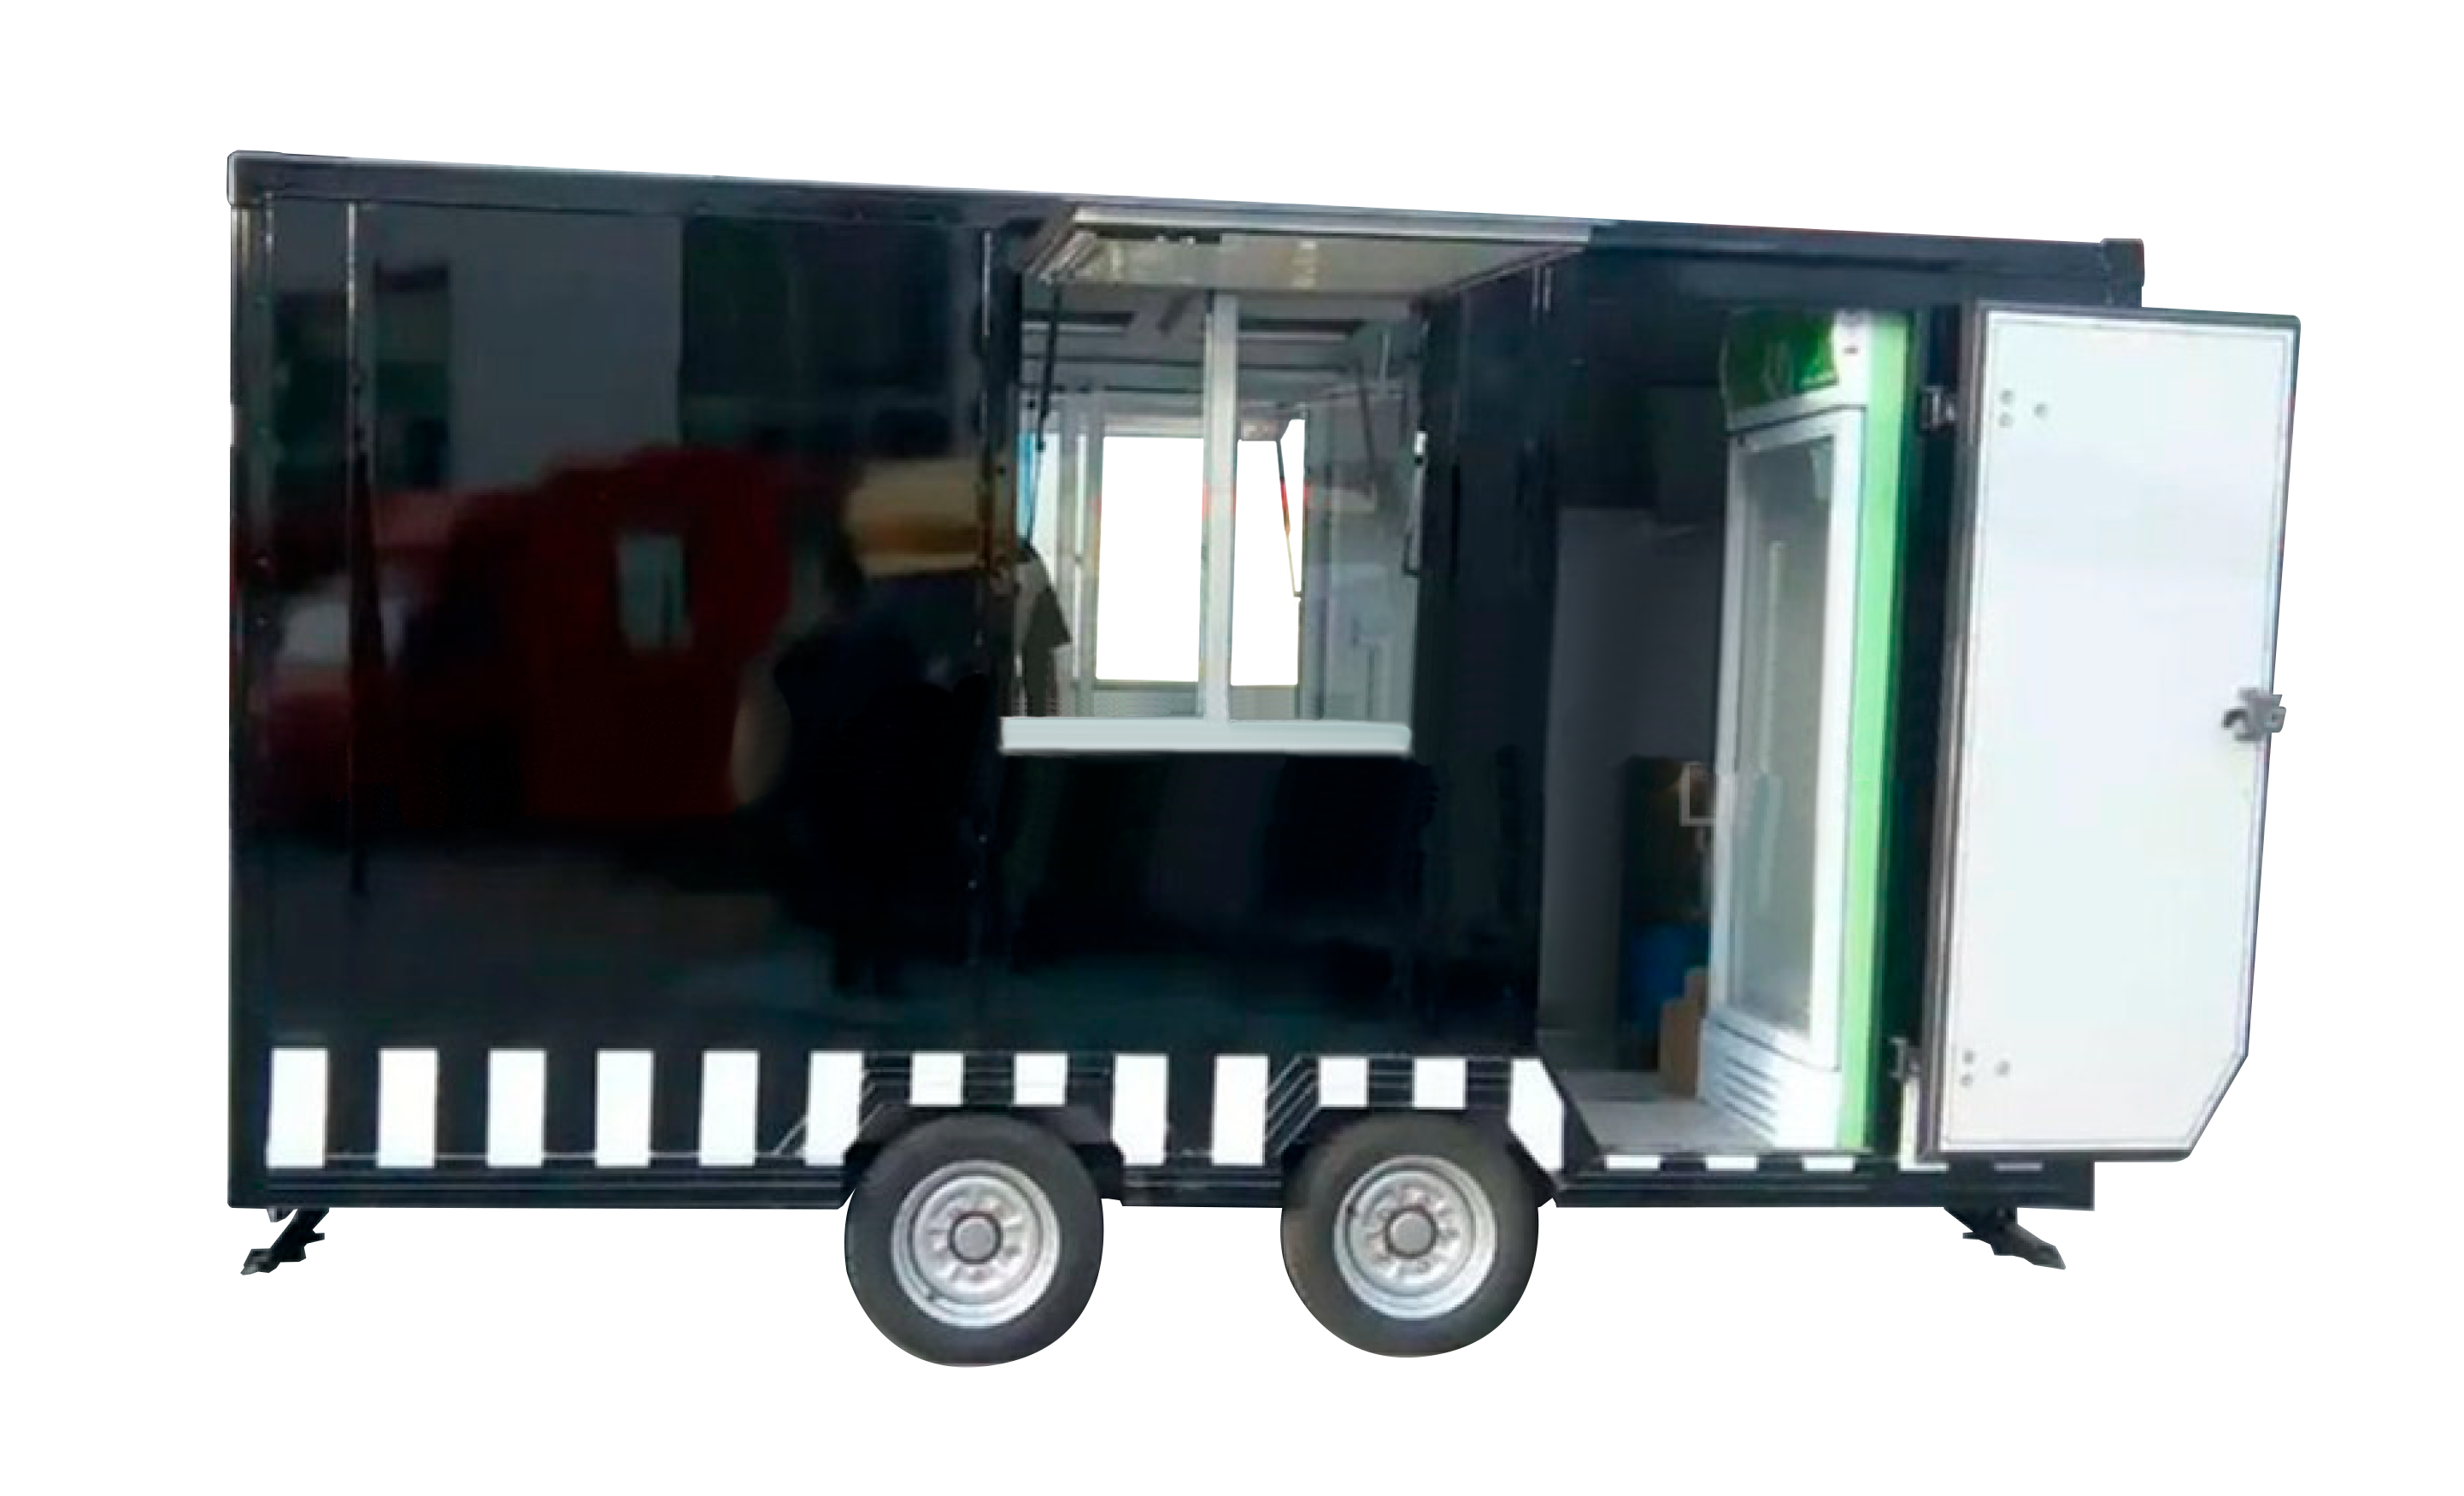 TRAILER DE COMIDA AL AIRE LIBRE | EUROPEO| MODELO MS-A3-35 side